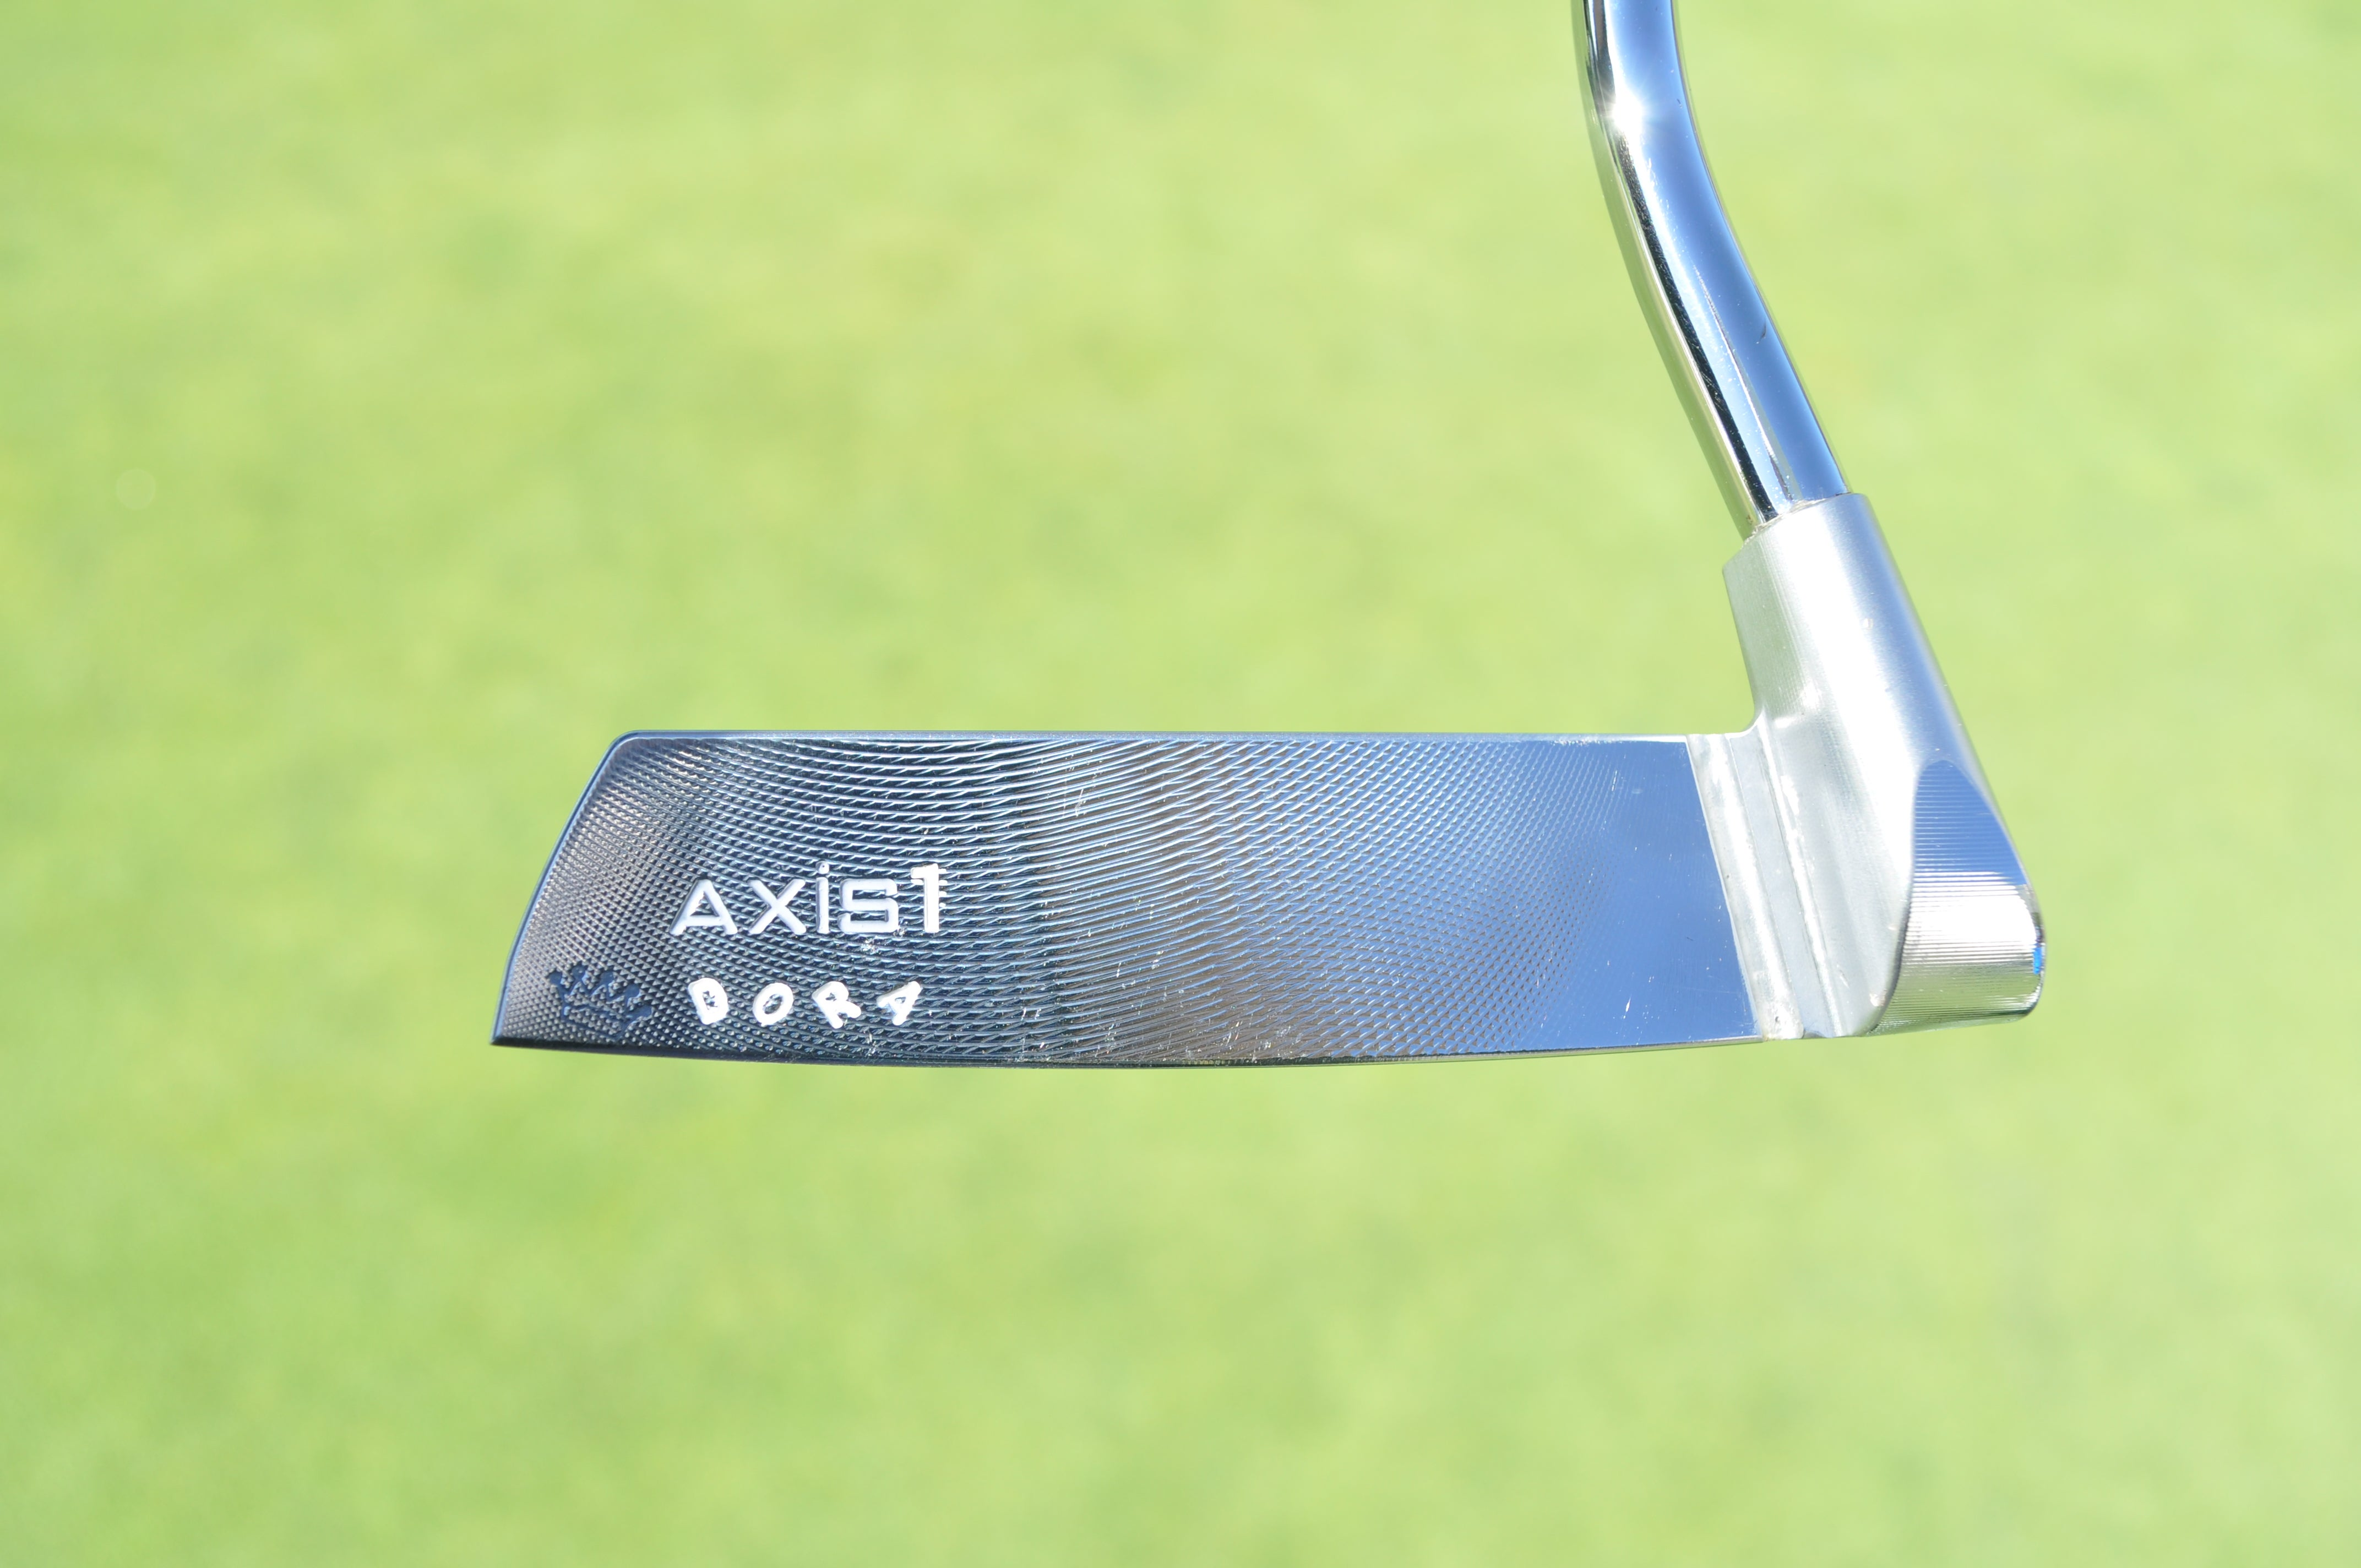 Axis1 Golf built a Tour putter for Kyle Stanley to test that has his dog's name stamped on the toe.